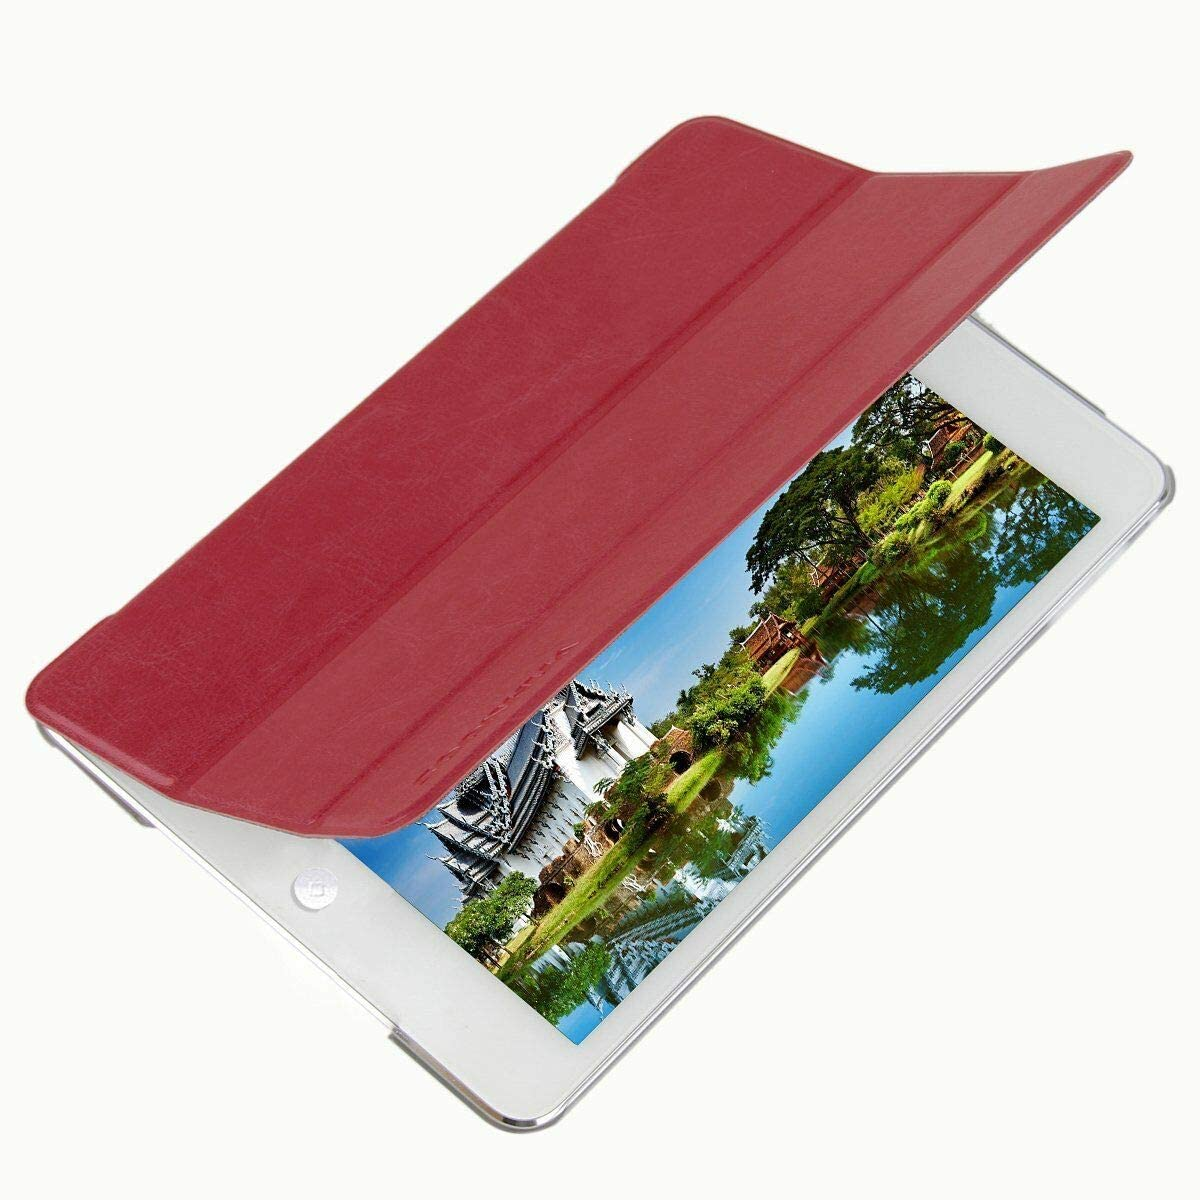 SOONHUA Translated Leather Case Cover PU Ultra for Pad I Sim Min Stand Over item handling